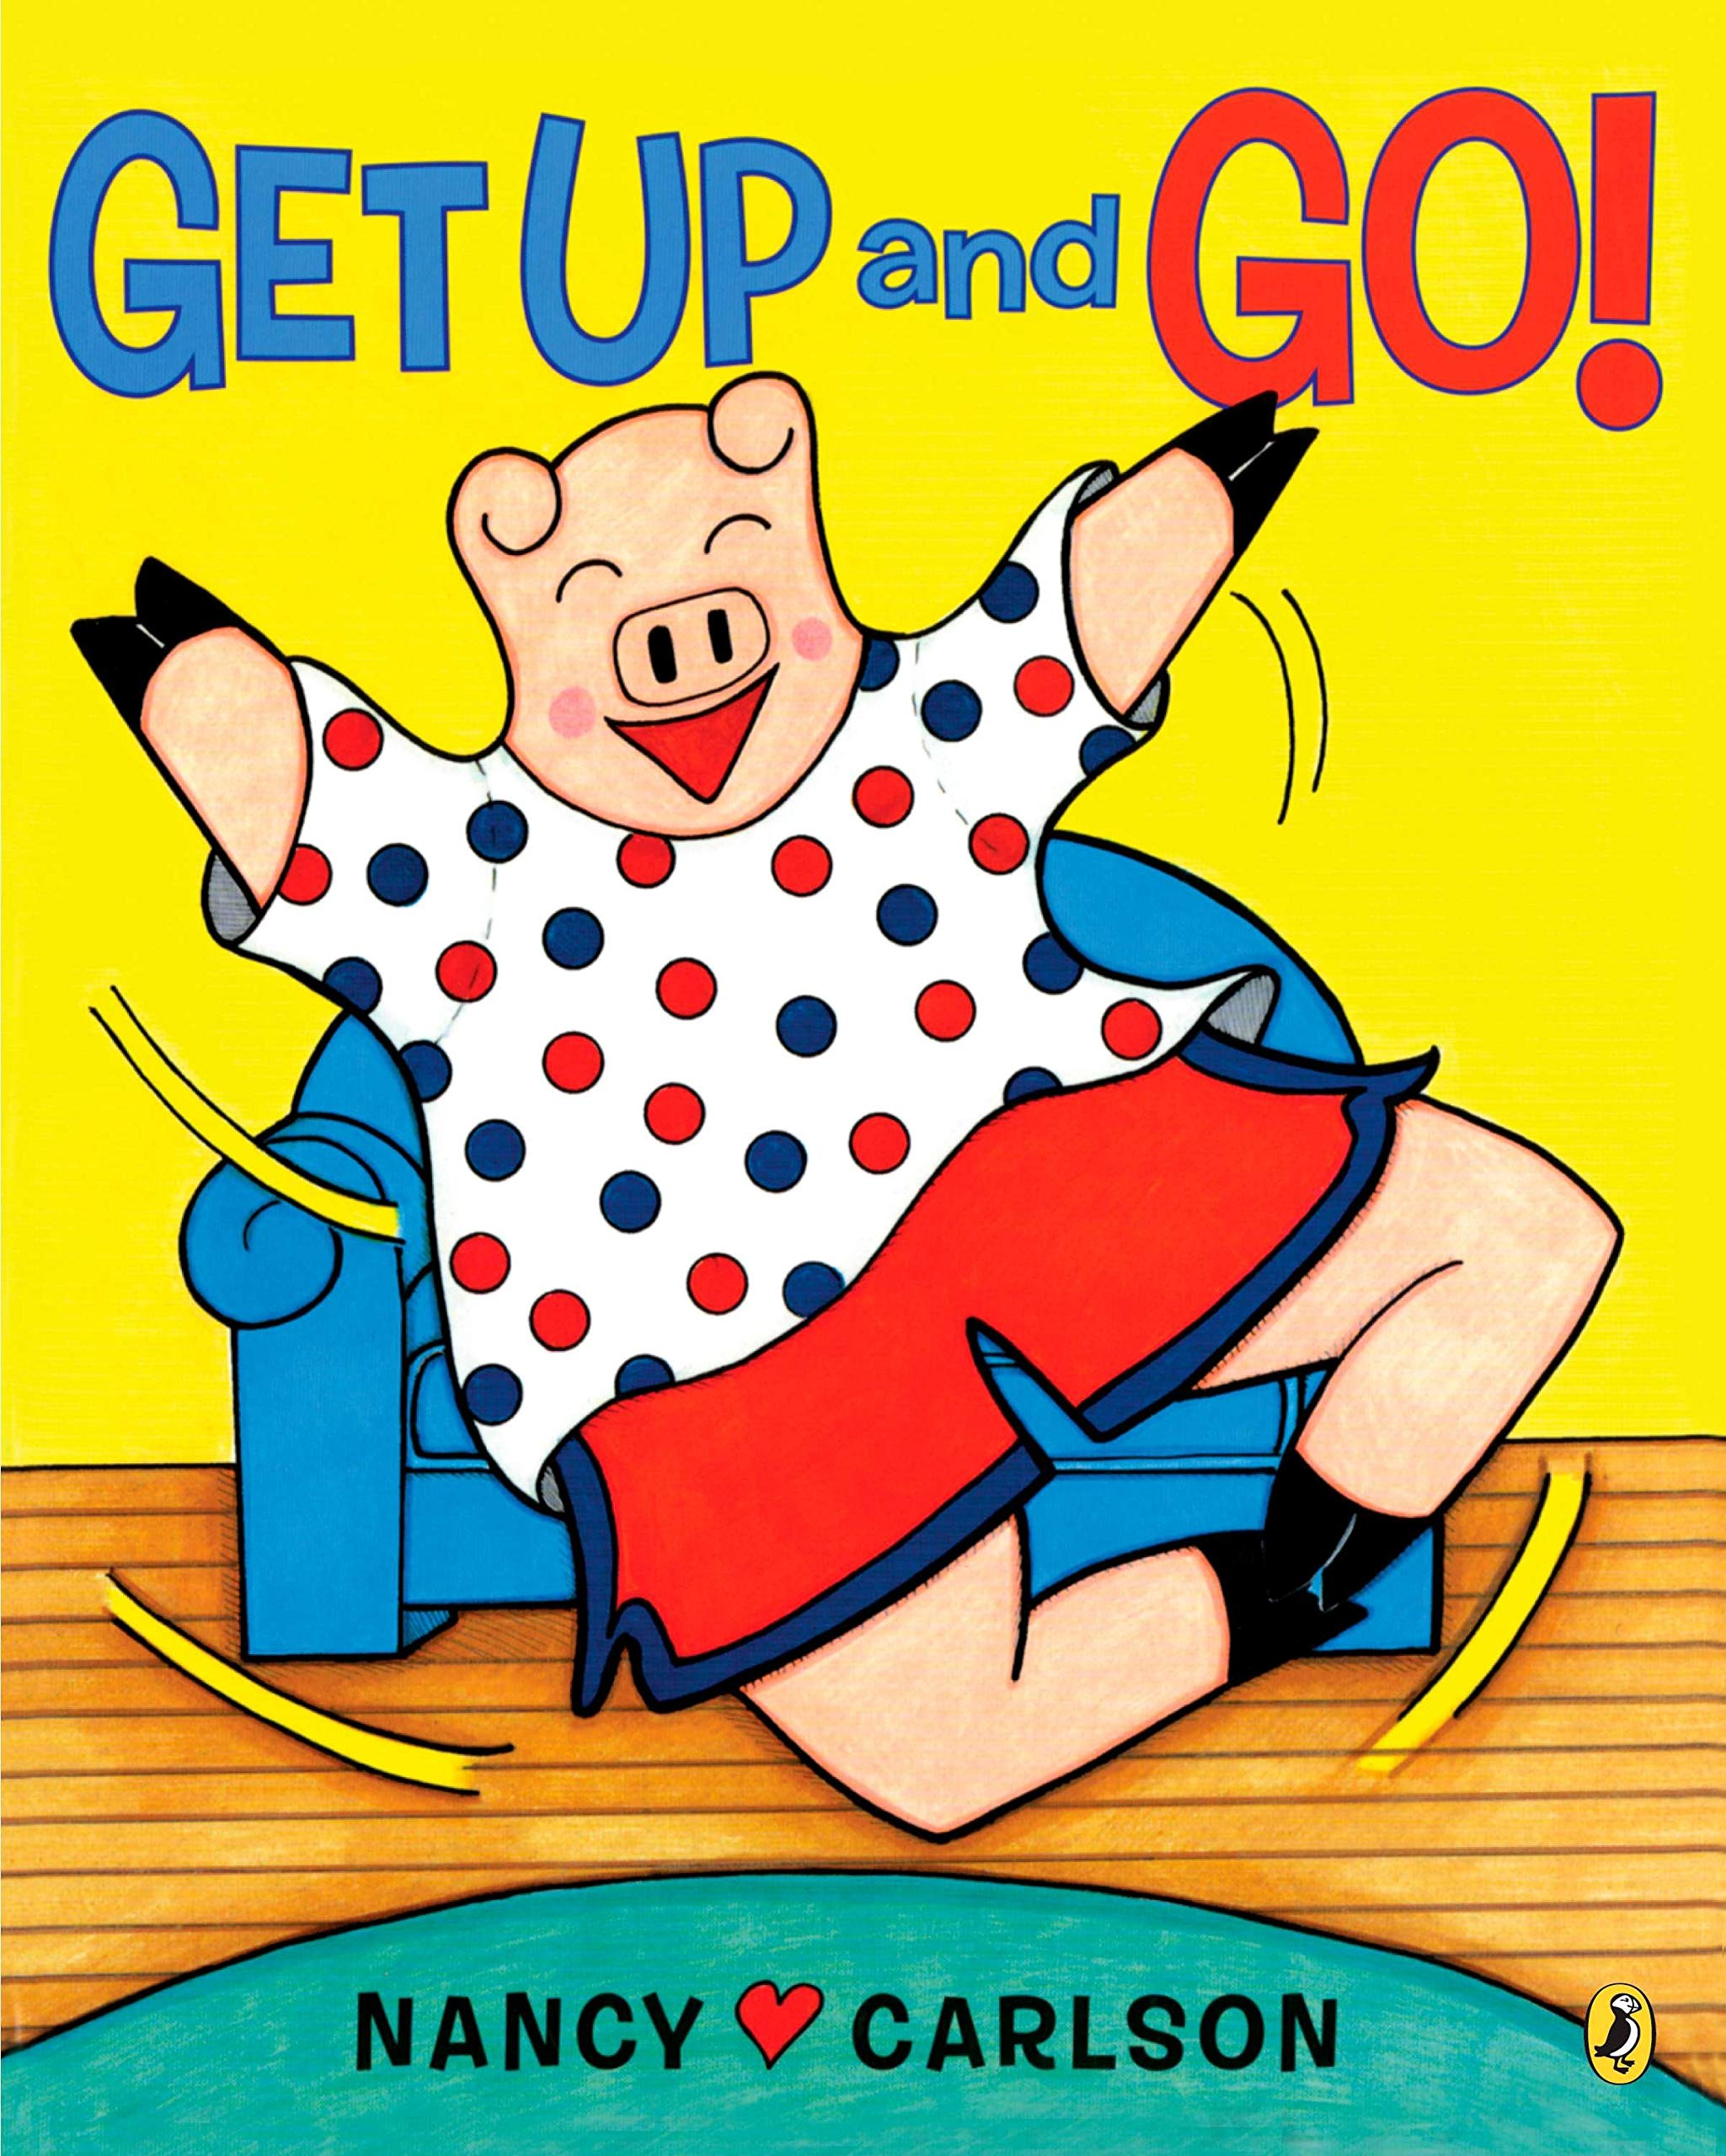 Amazon.com: Get Up and Go! (9780142410646): Carlson, Nancy: Books